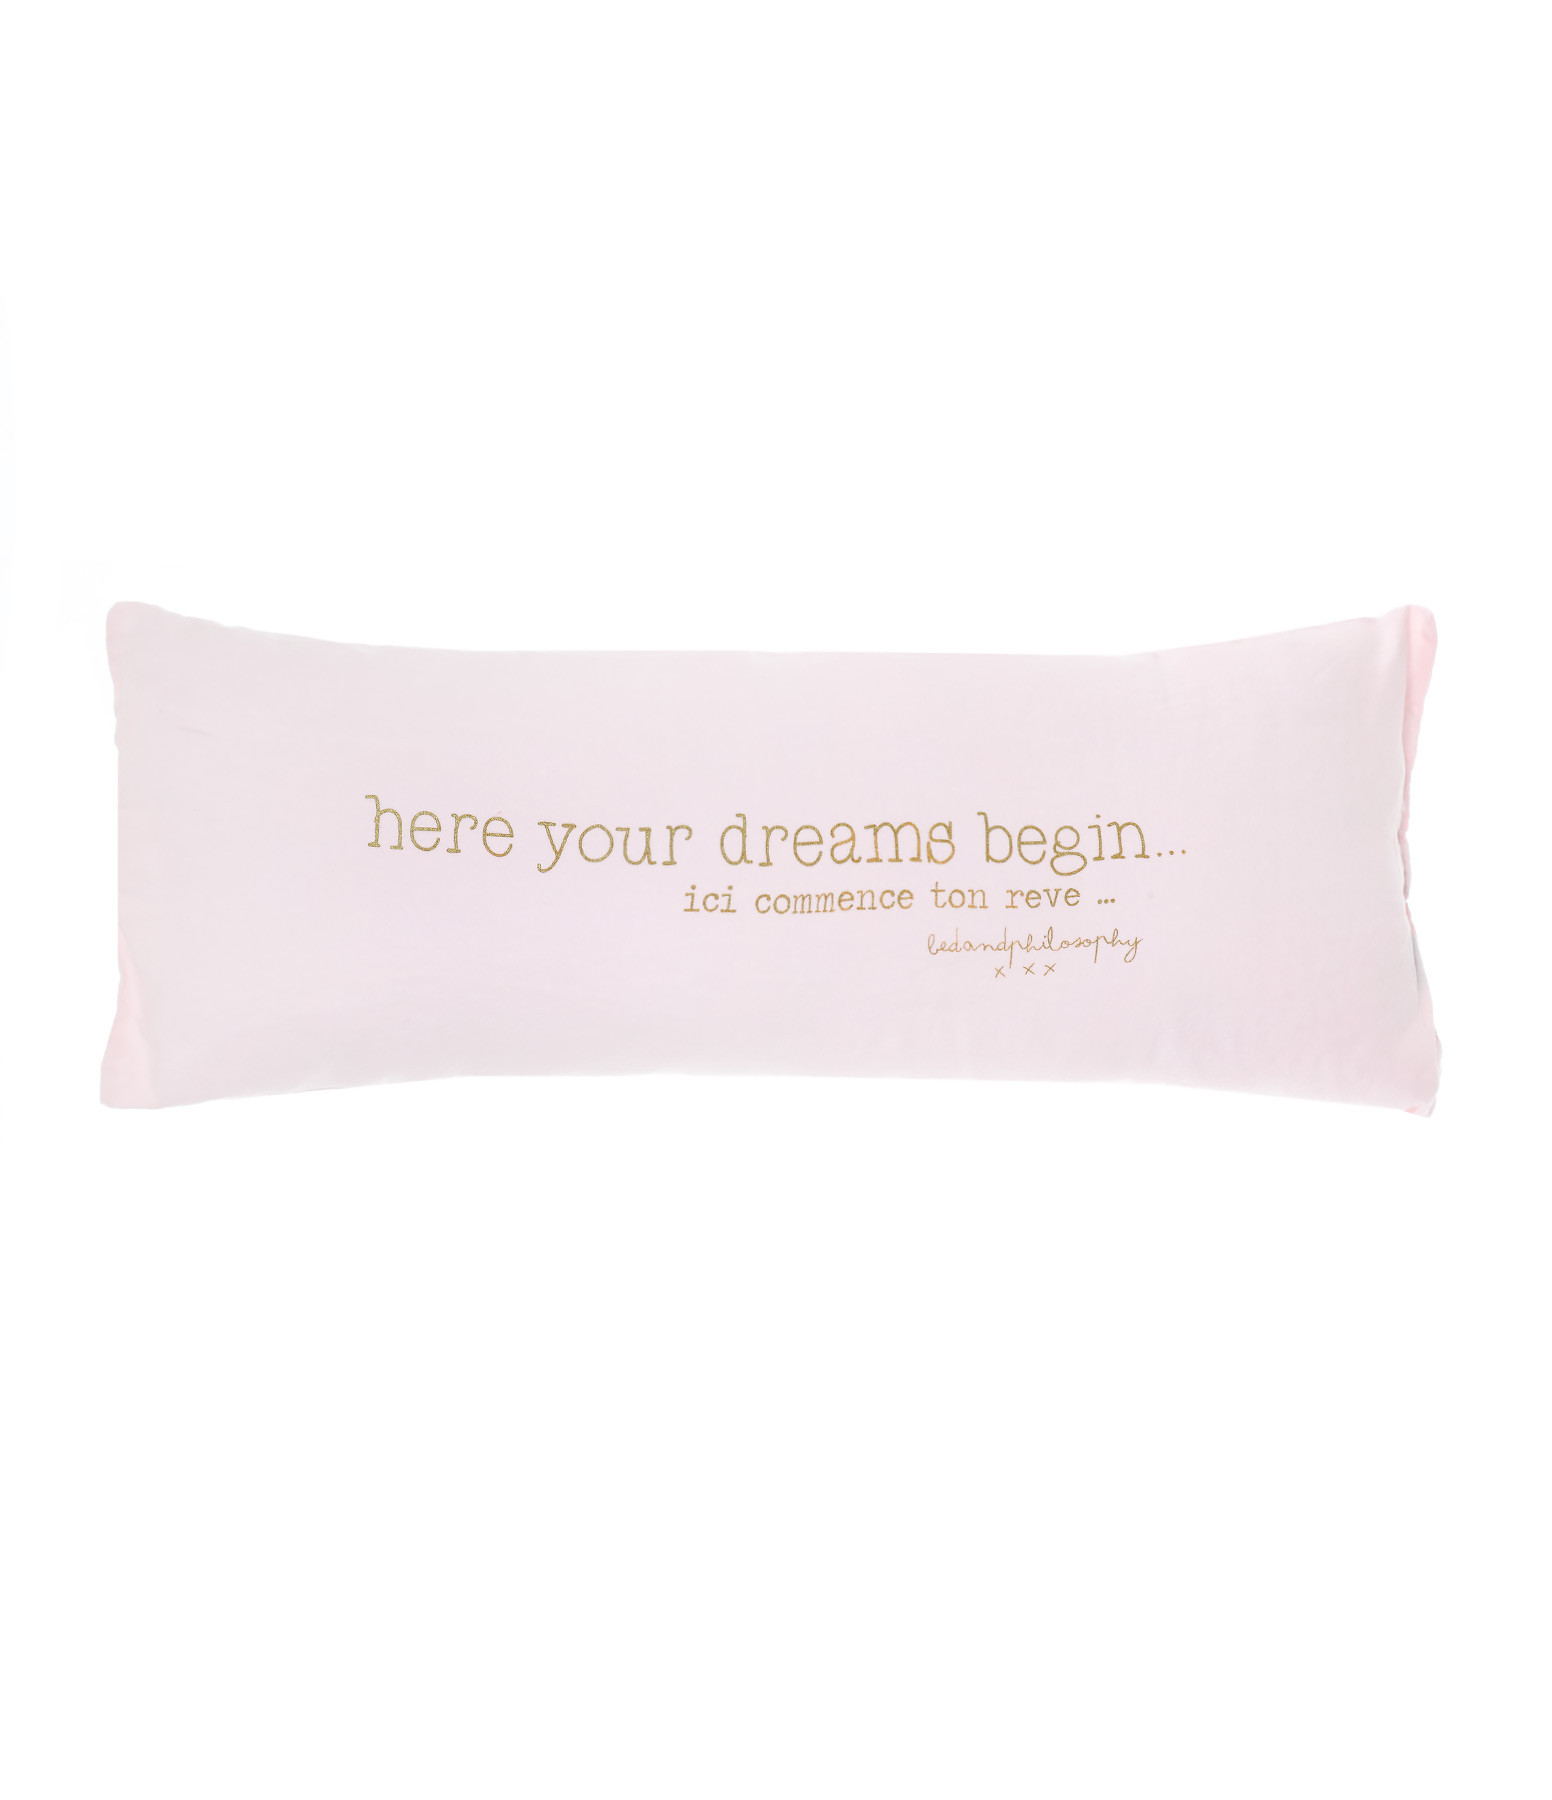 BED AND PHILOSOPHY - Coussin Smoothie Lin Shamalo Print Doré